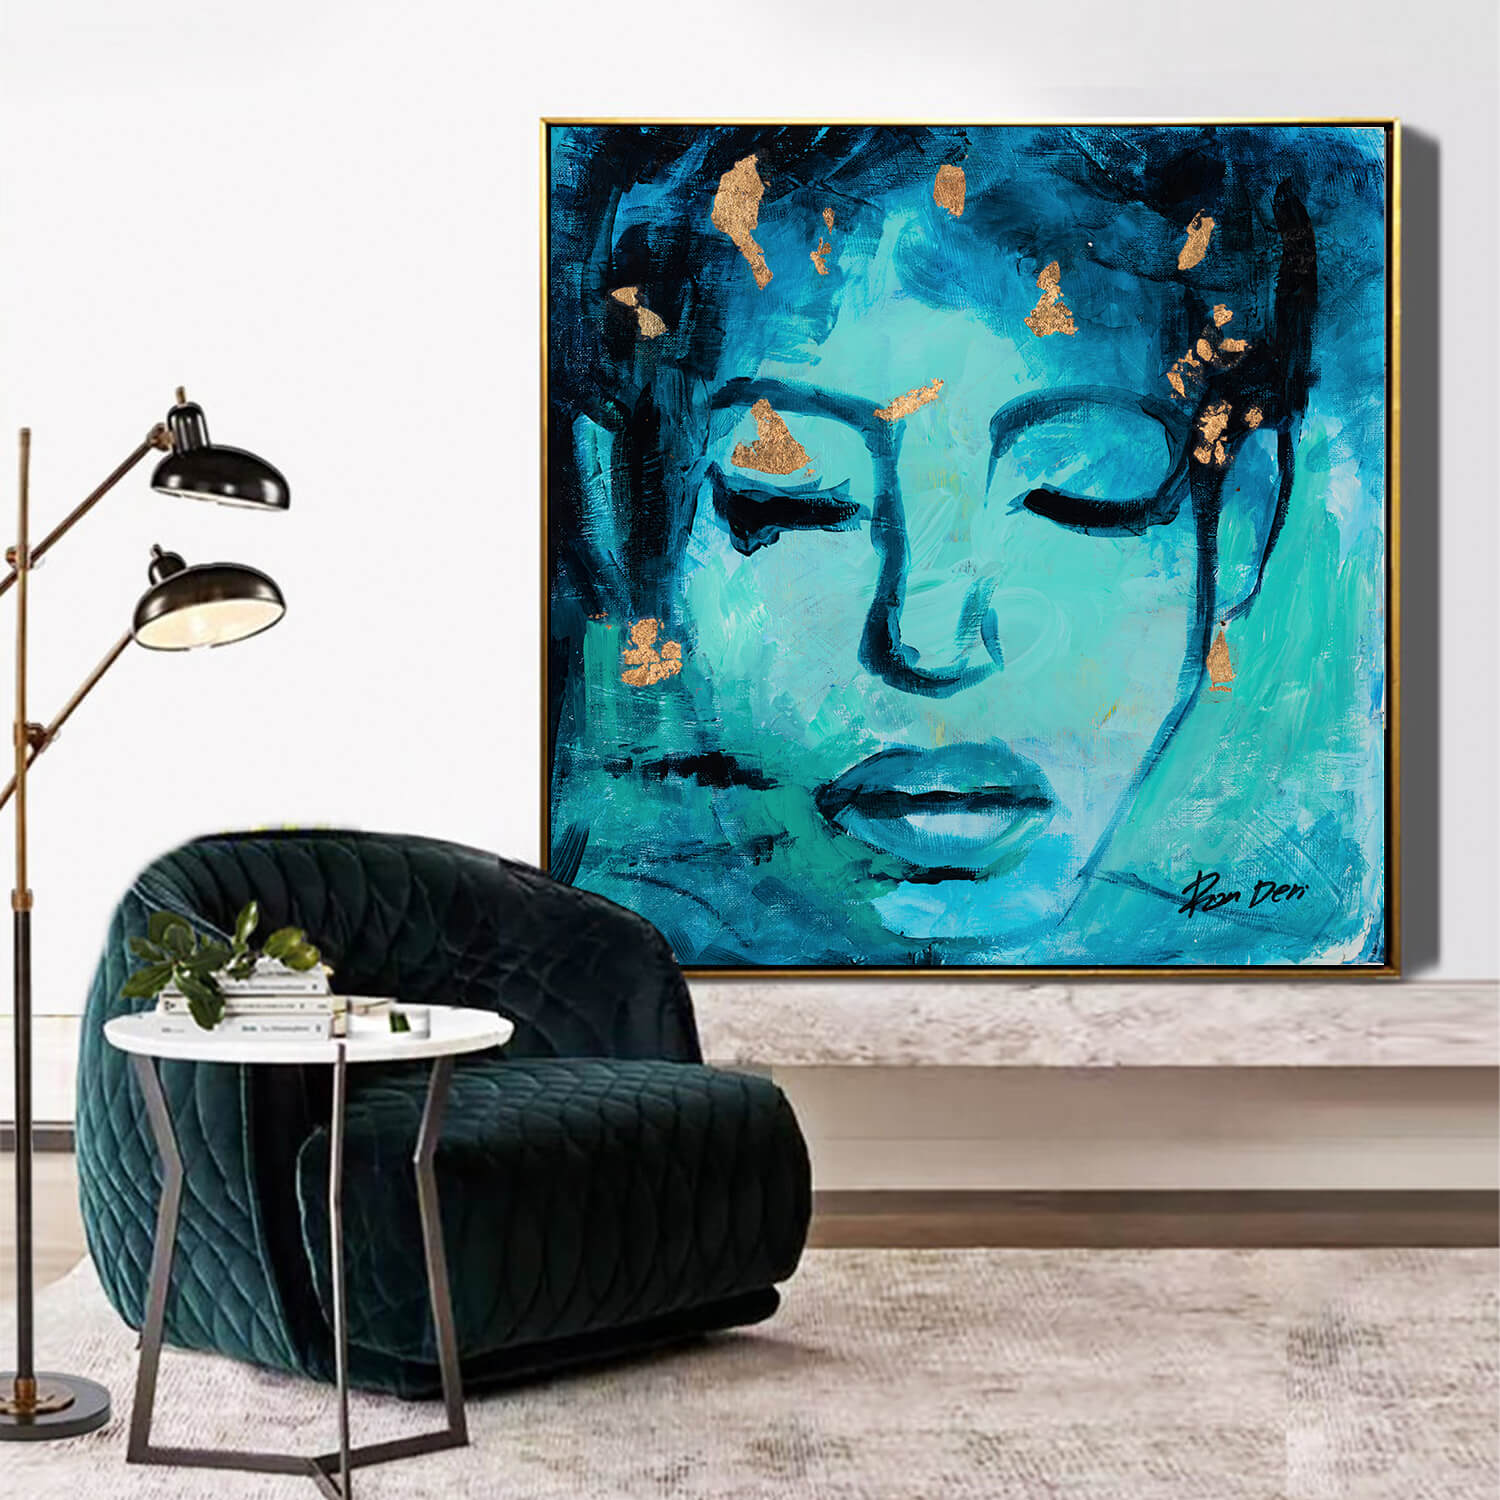 abstract_art_painting_on_canvas_large_wall_art_ron_deri_7